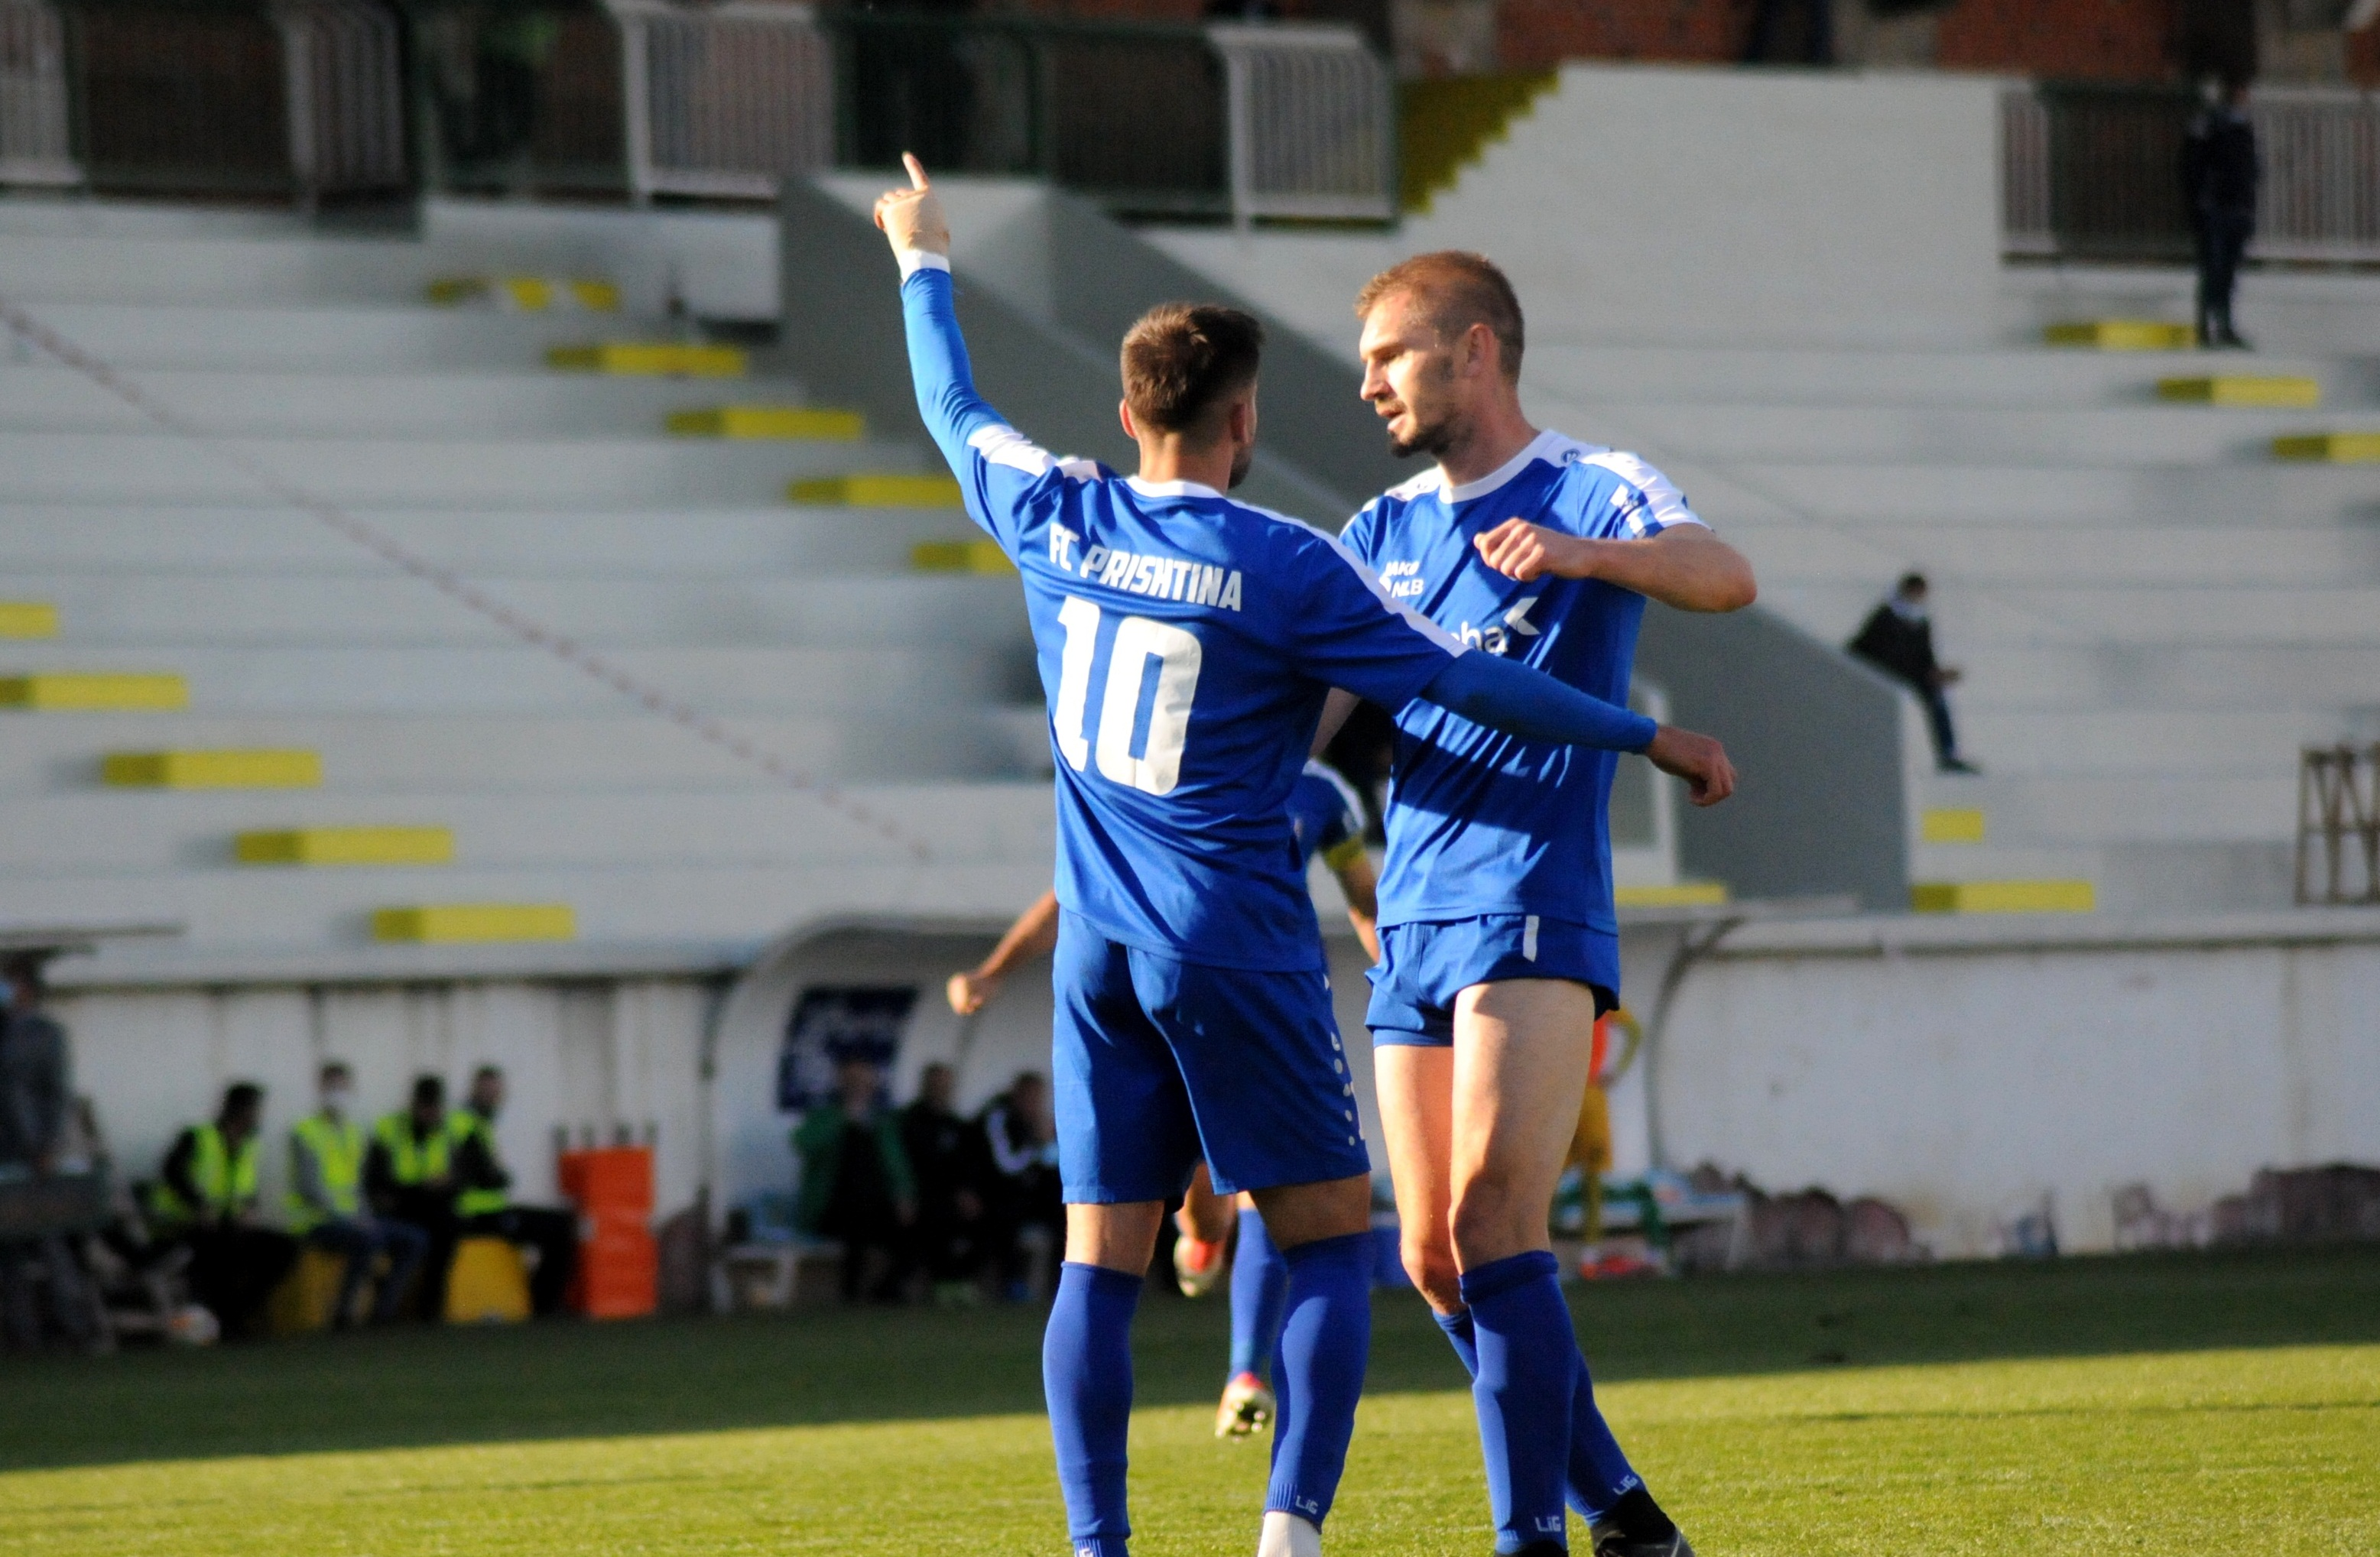 Golat: Feronikeli - Prishtina 1-2 (video)